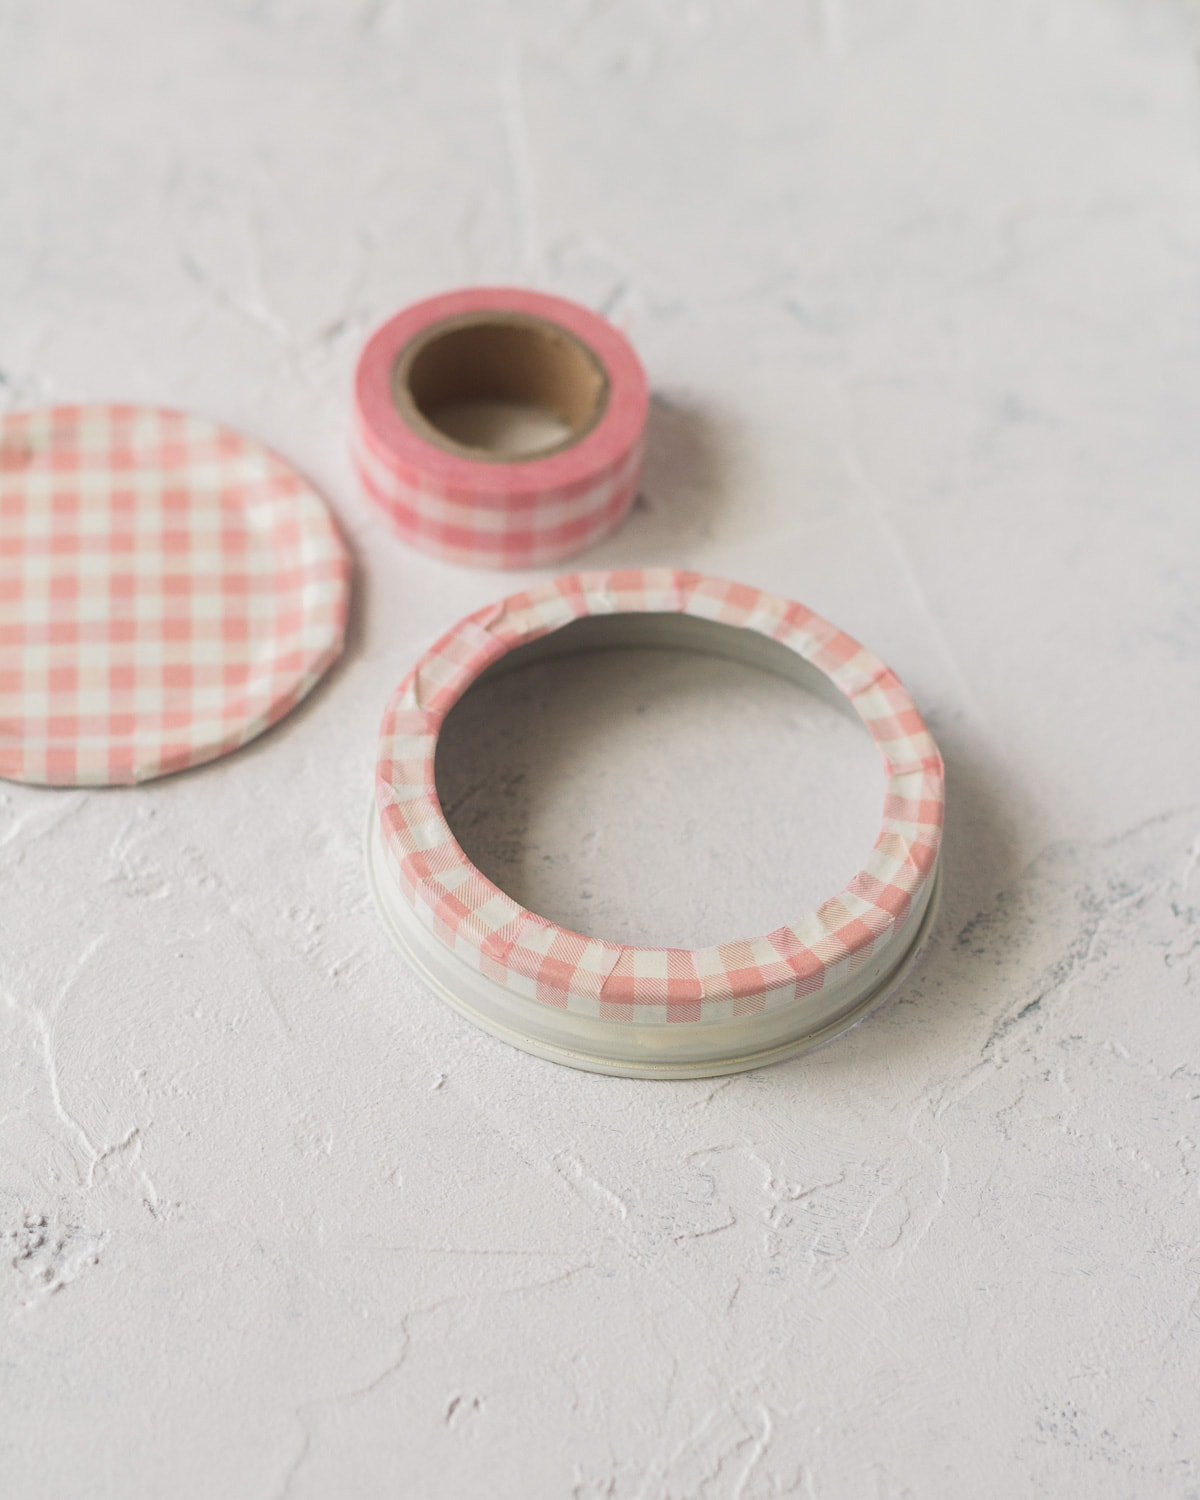 Glass jar lid covered in pink washi tape.